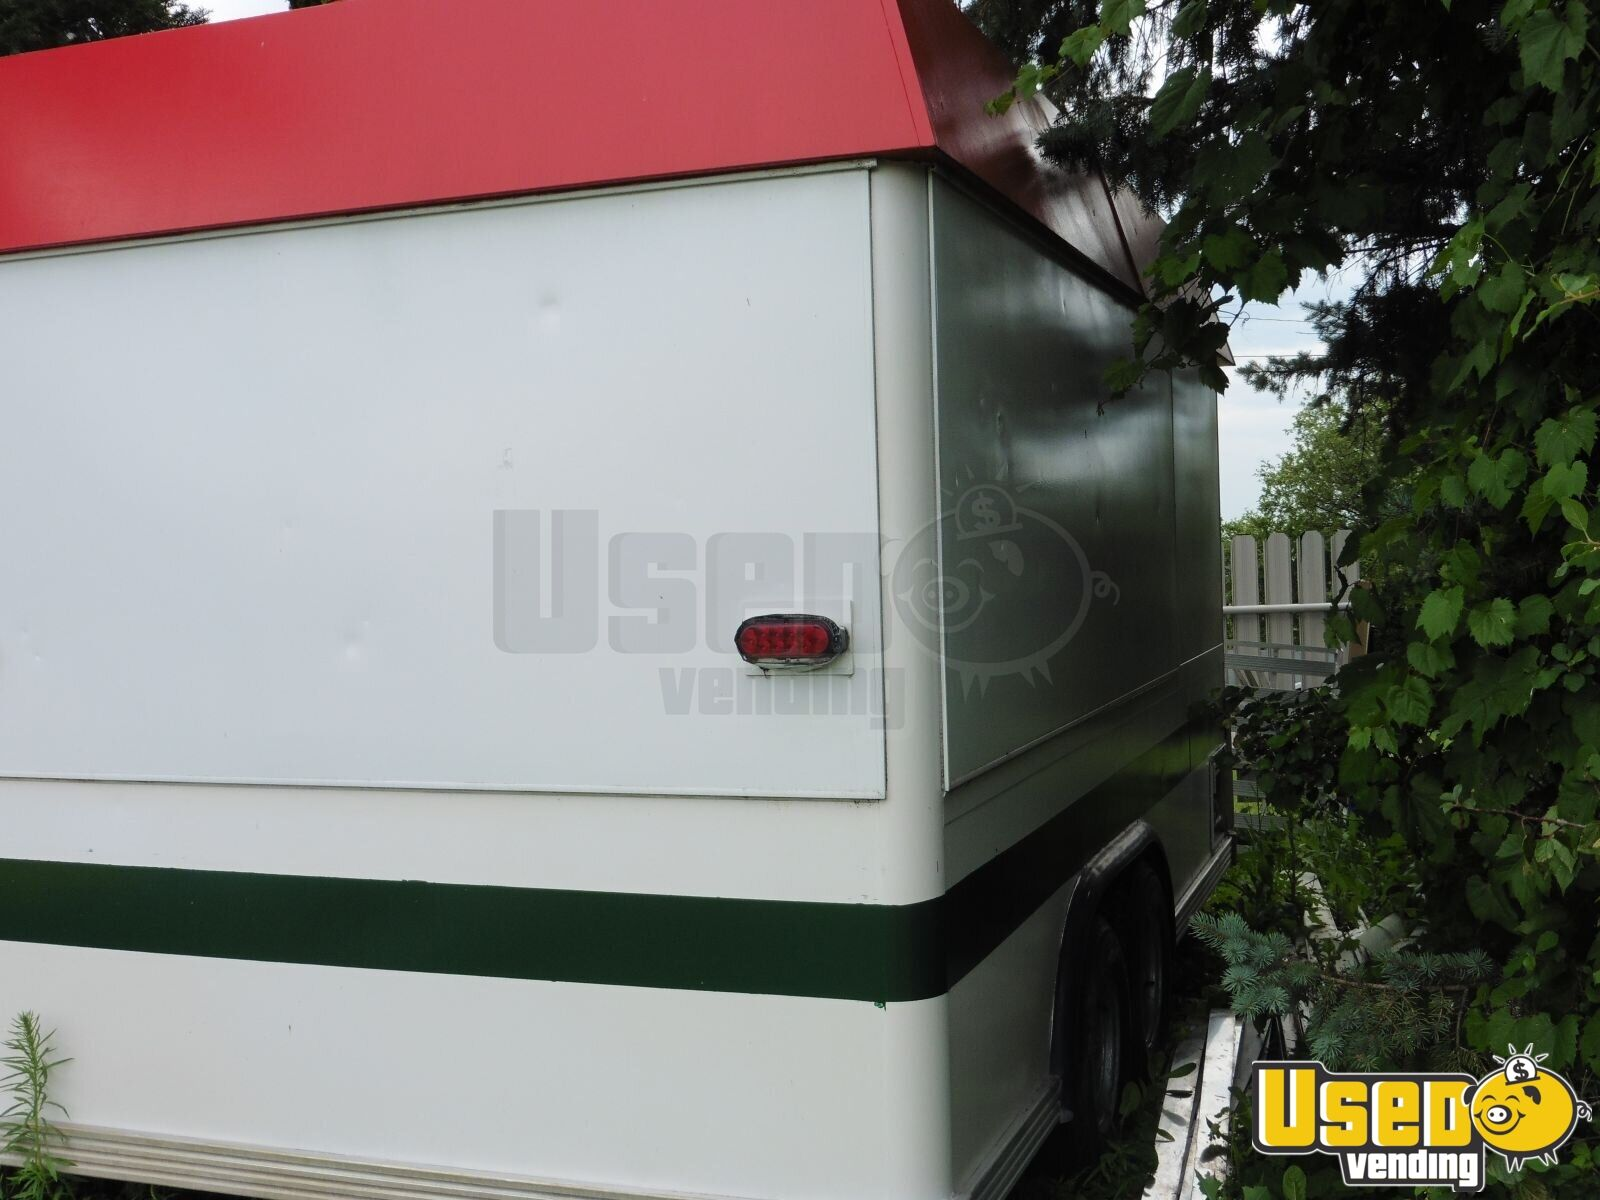 1999 Century All-purpose Food Trailer Propane Tank Vermont for Sale - 4